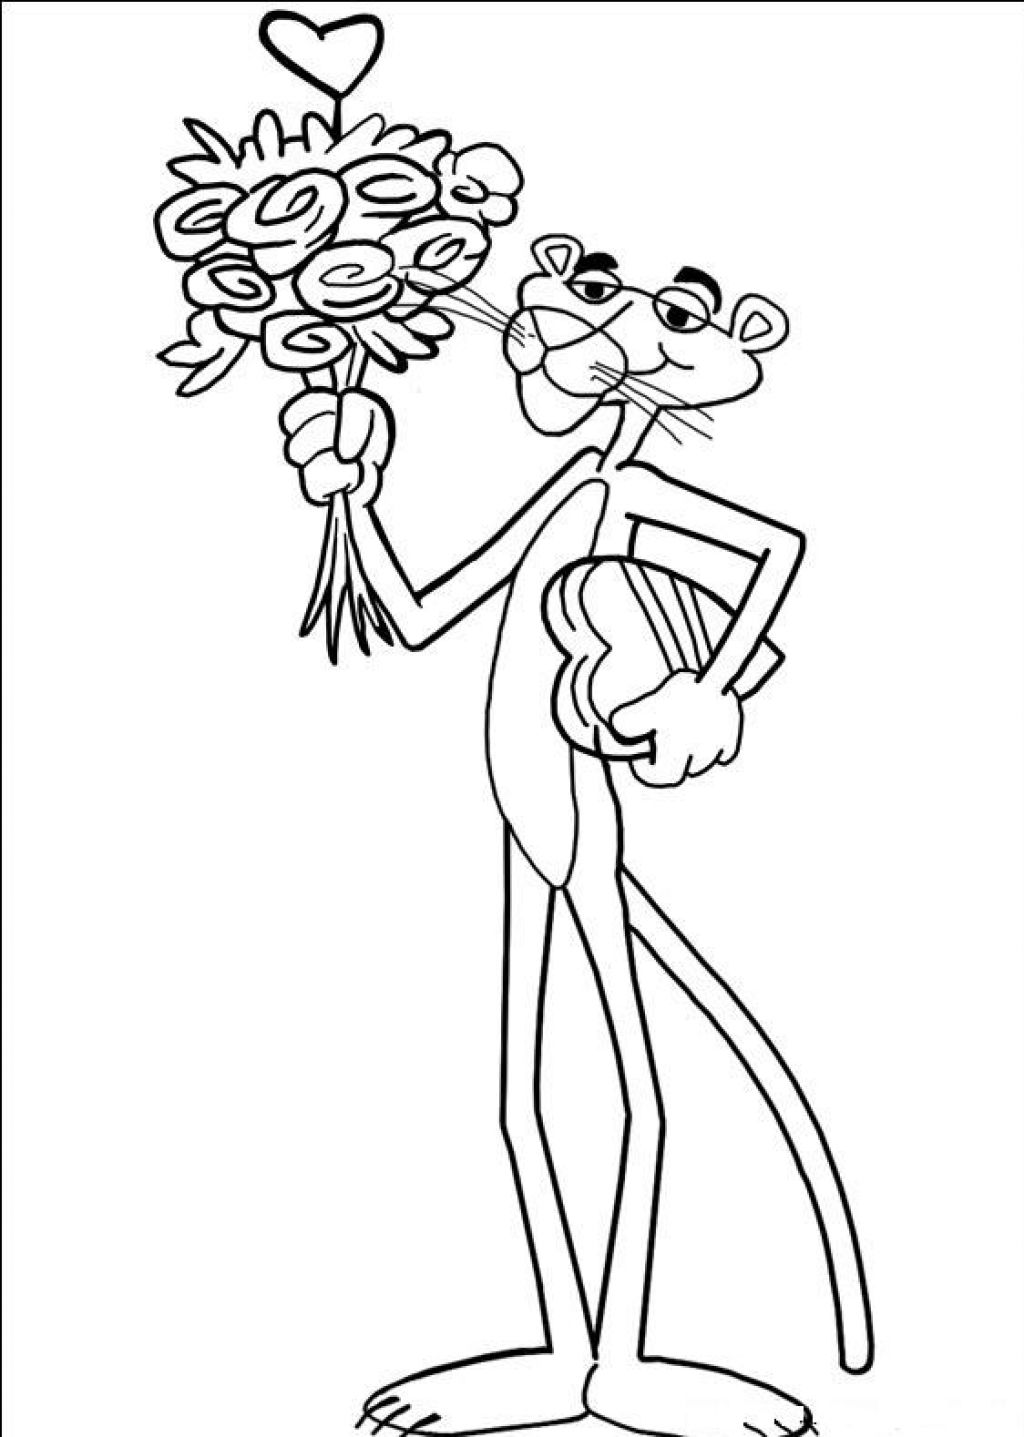 Free Printable Pink Panther Coloring Pages For Kids